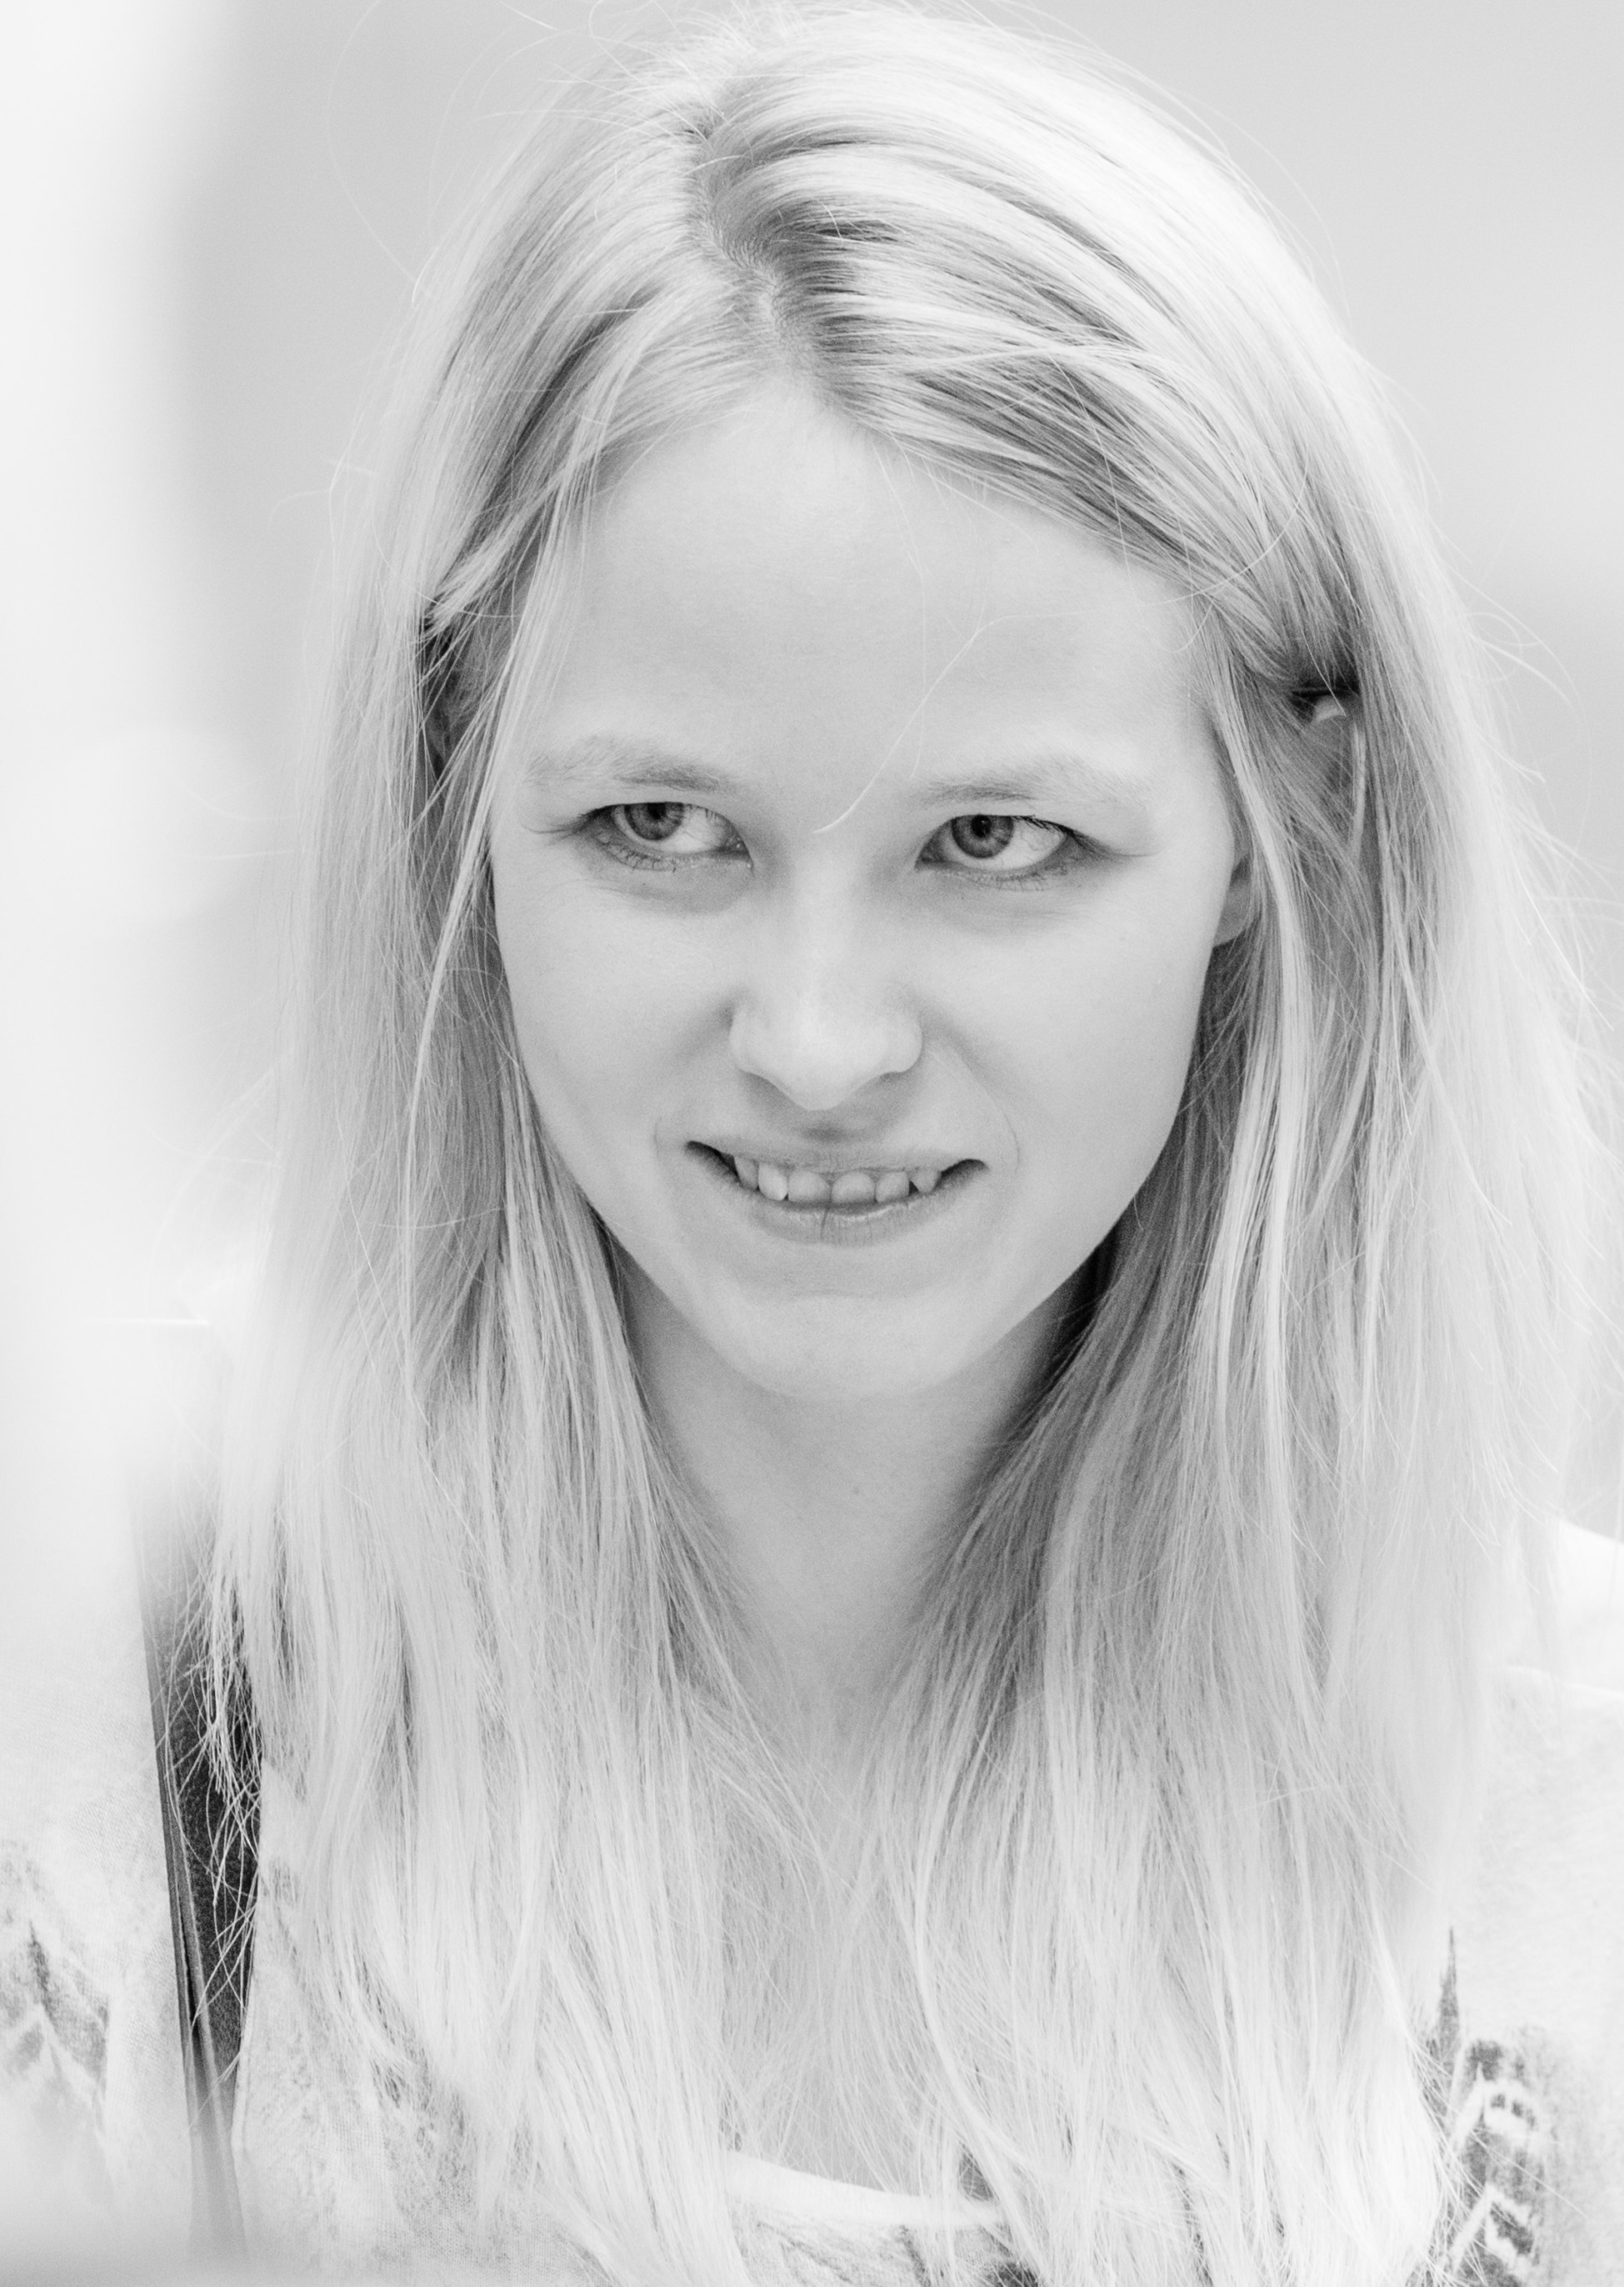 a cute girl photographed in Stockholm, Sweden in June 2014, black and white, picture 20/26